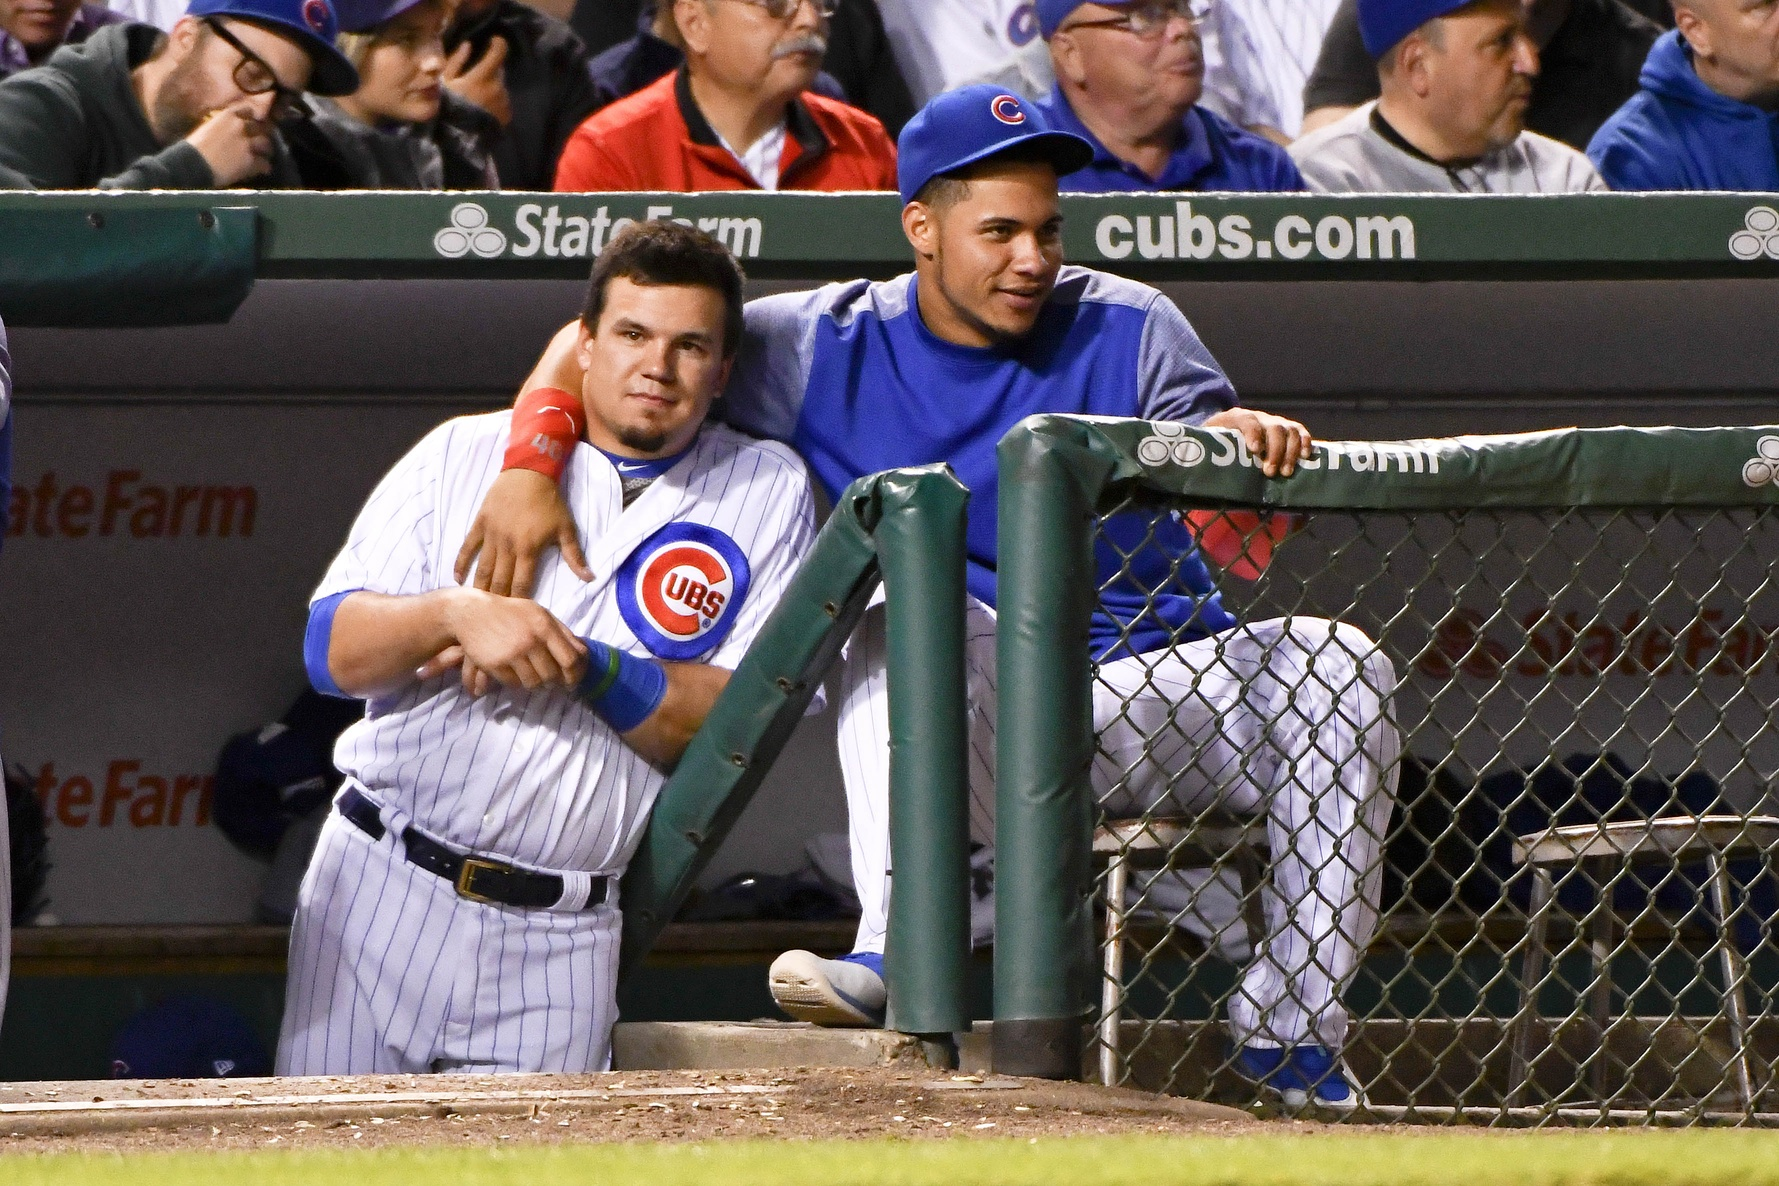 Schwarber's single leads Iowa to 7-6 win over New Orleans